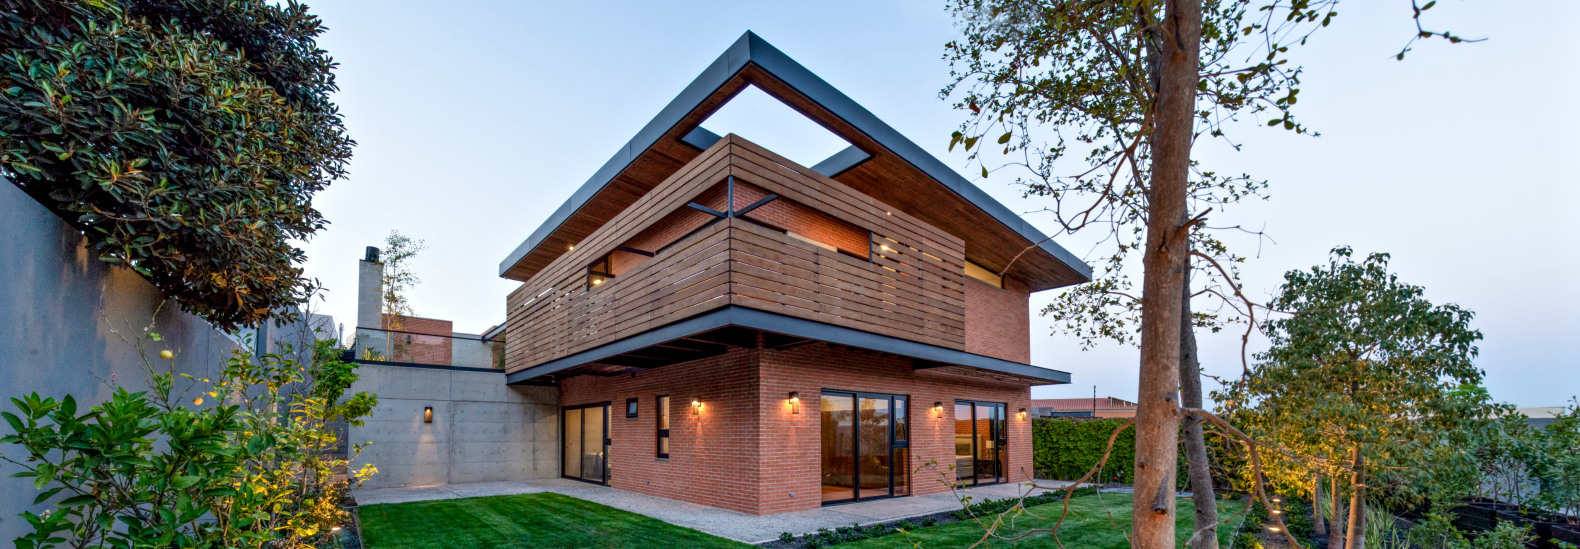 Attractive Architects Used Reclaimed Materials To Create This Stunning Home